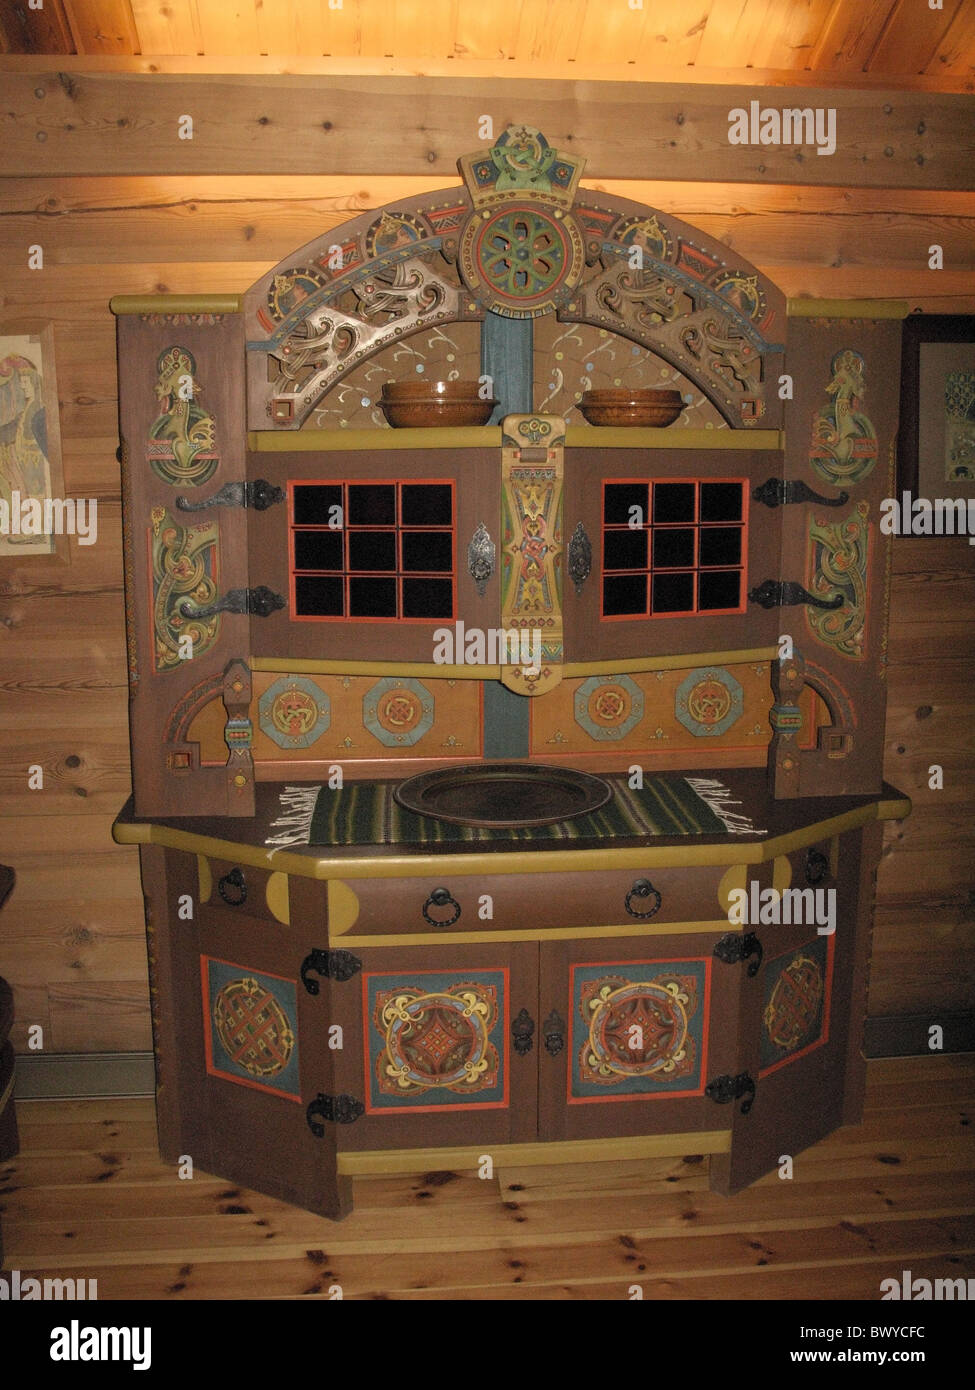 Traditional painted wooden sideboard, Dagestad Museum, Voss, Hordaland, Norway. - Stock Image